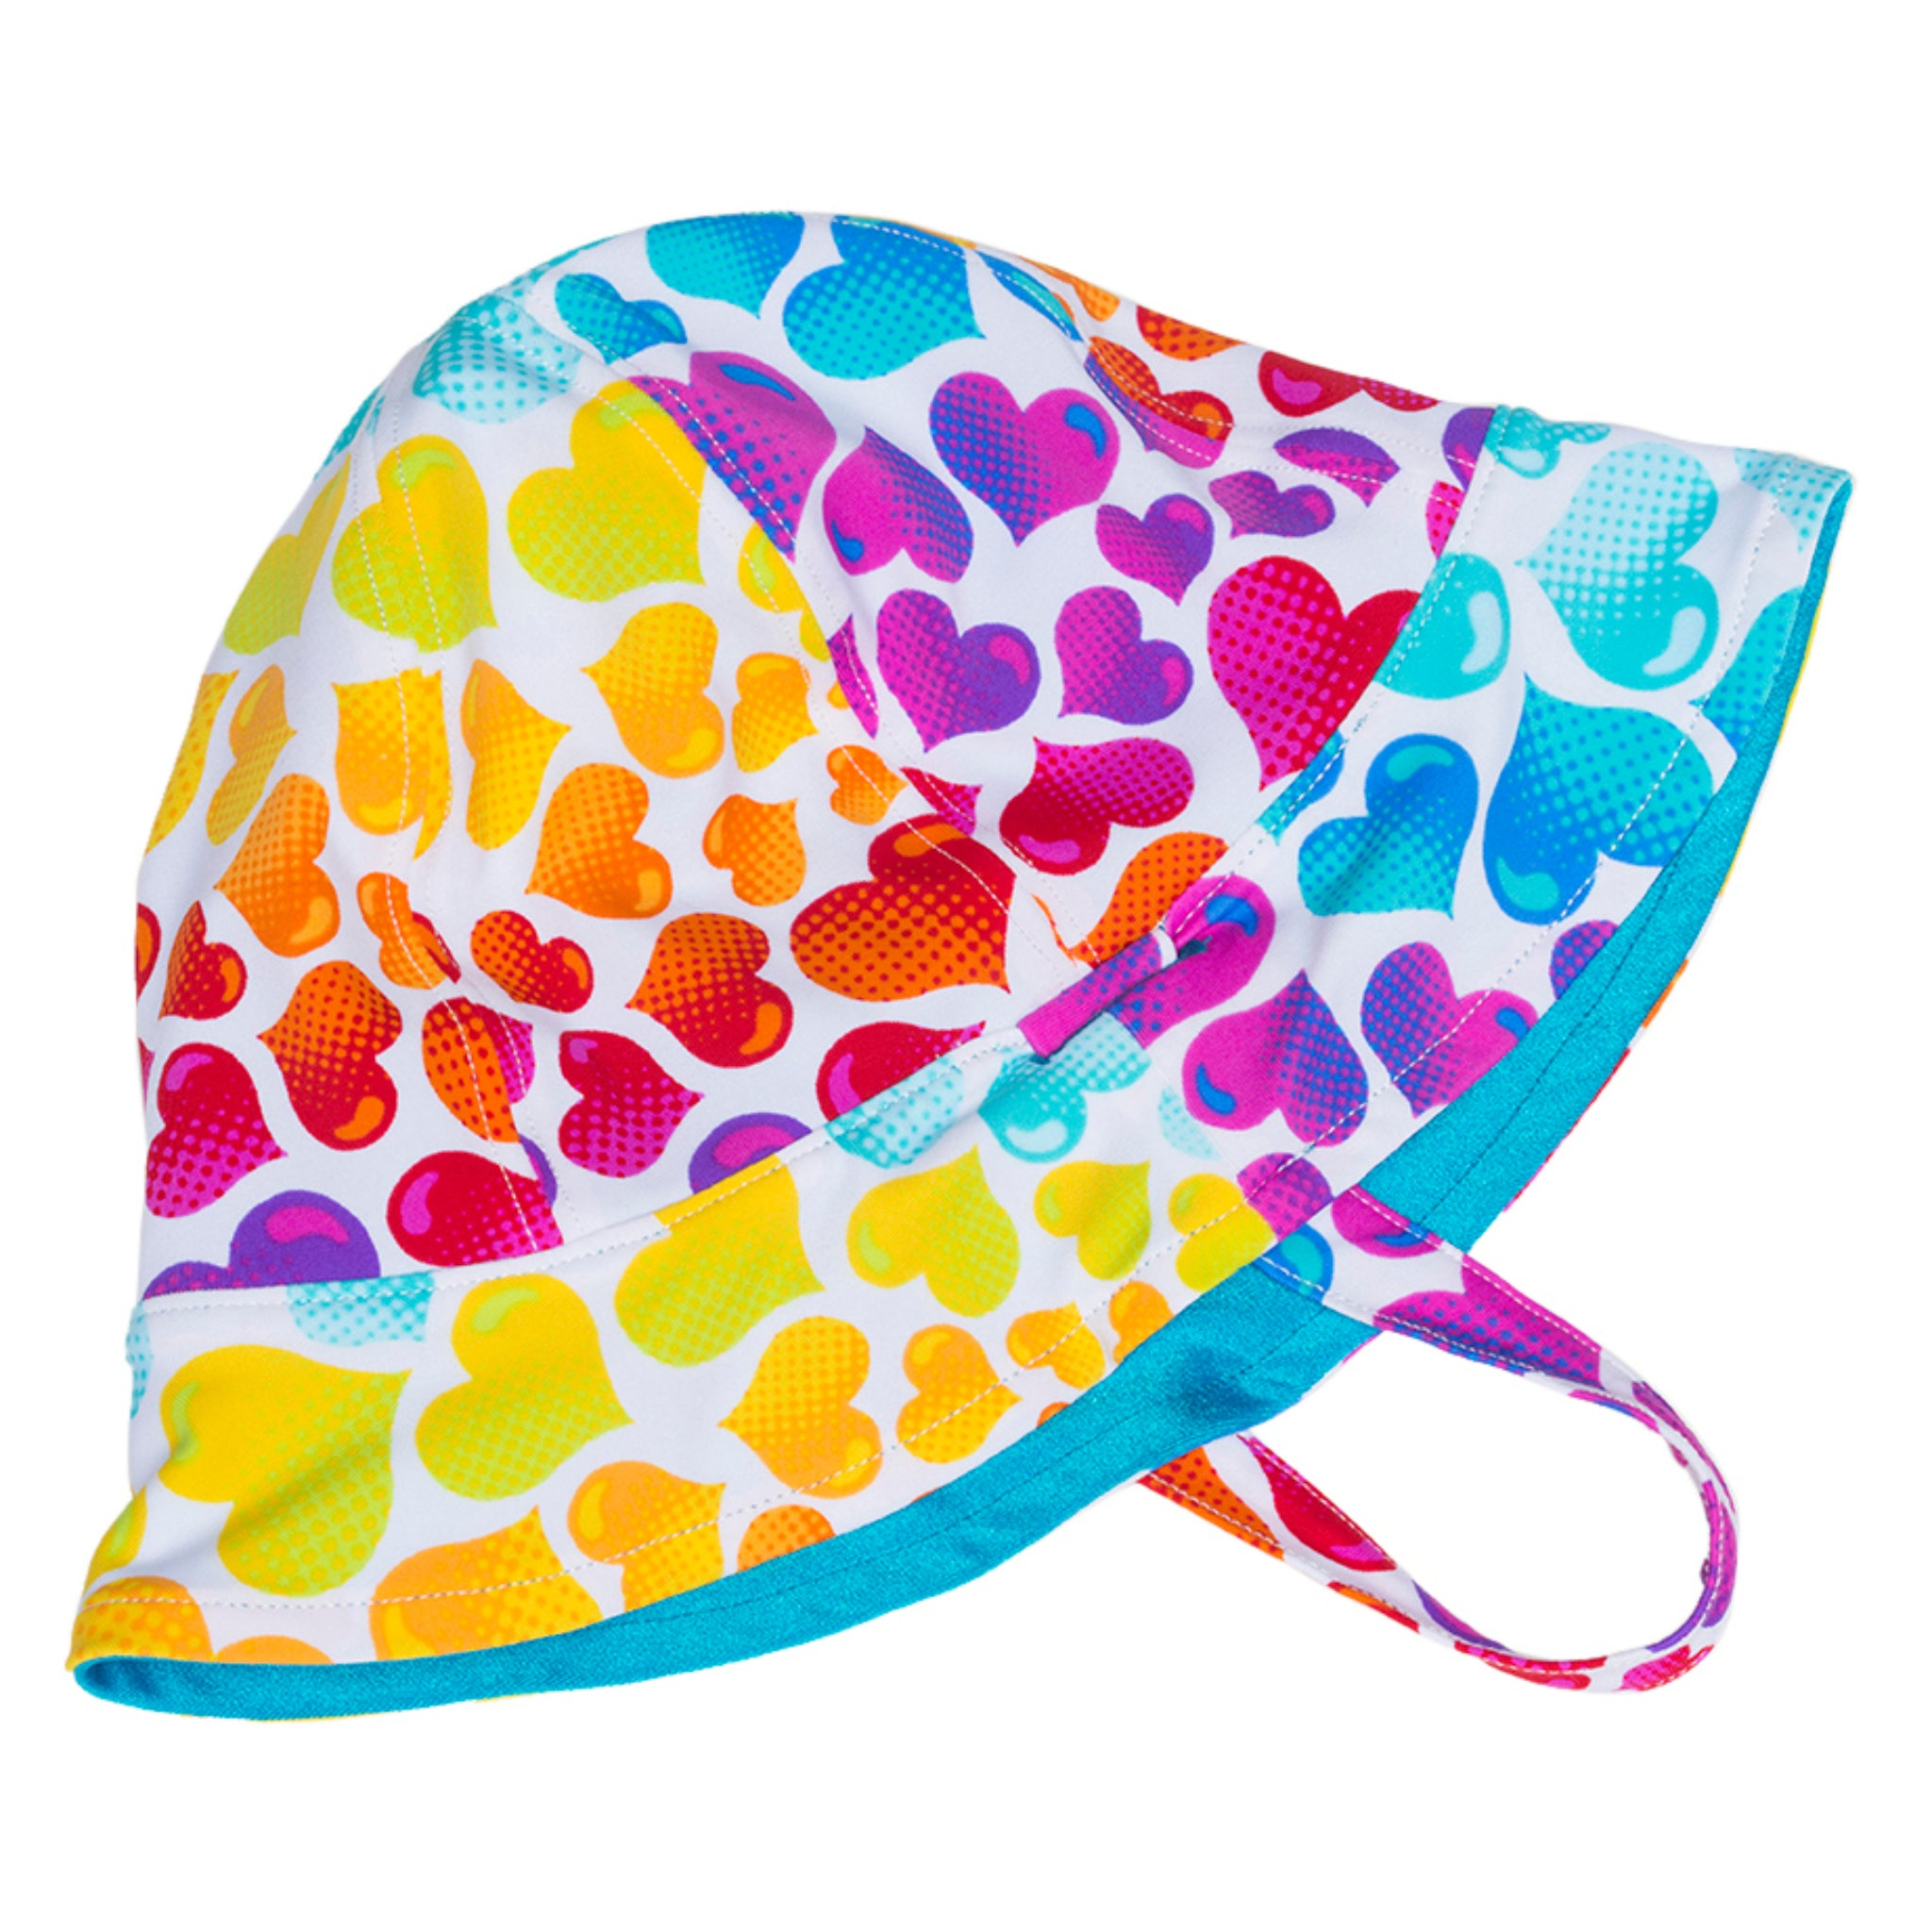 FASTEN reversible toddler hat with adorable rainbow hearts print on one side, turquoise on the other side. UPF 50+ sun hat providing excellent sun protection. Great for the beach or pool or when your toddler is outside. Chin strap to keep hat on your toddler's head!